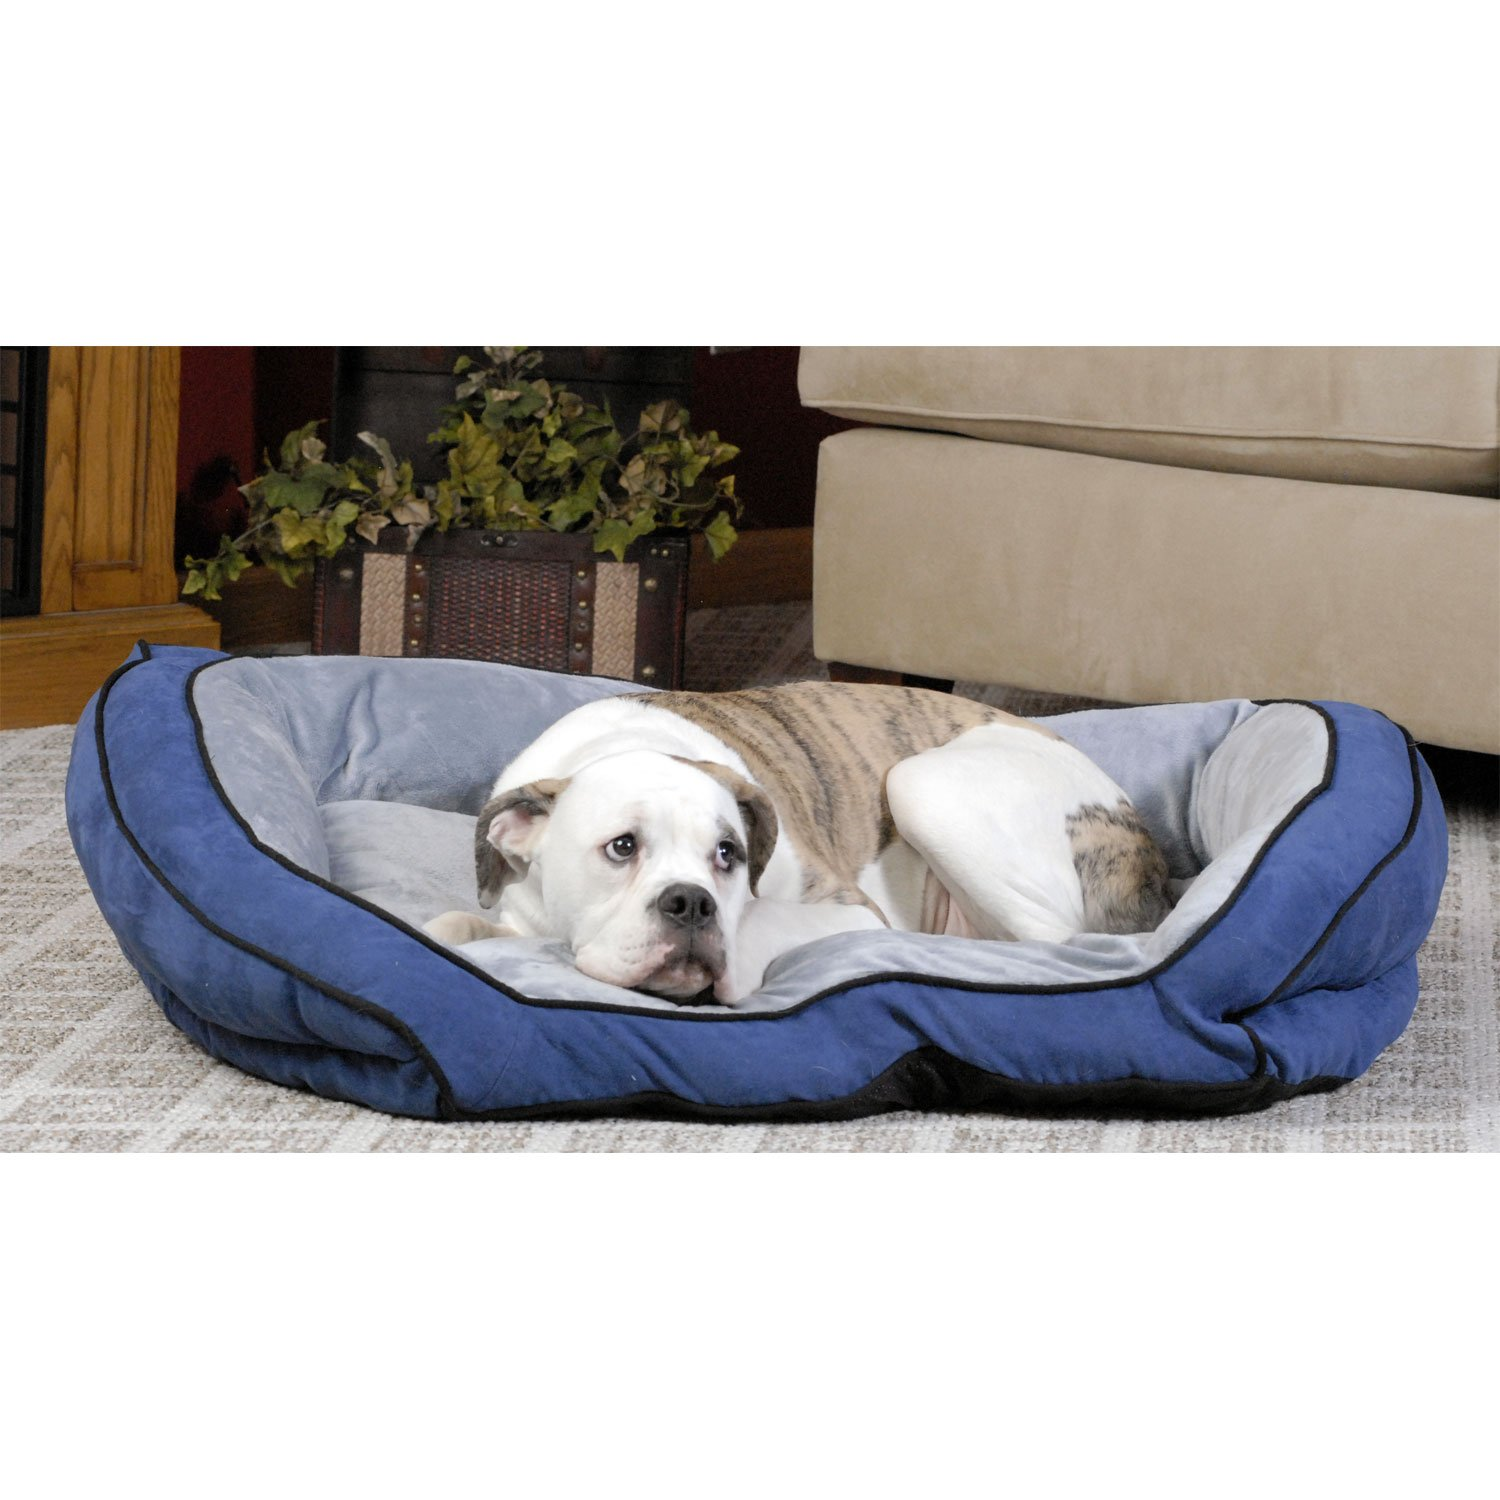 KH Bolster Couch Dog Bed in Blue  Gray 28 L x 40 W Large